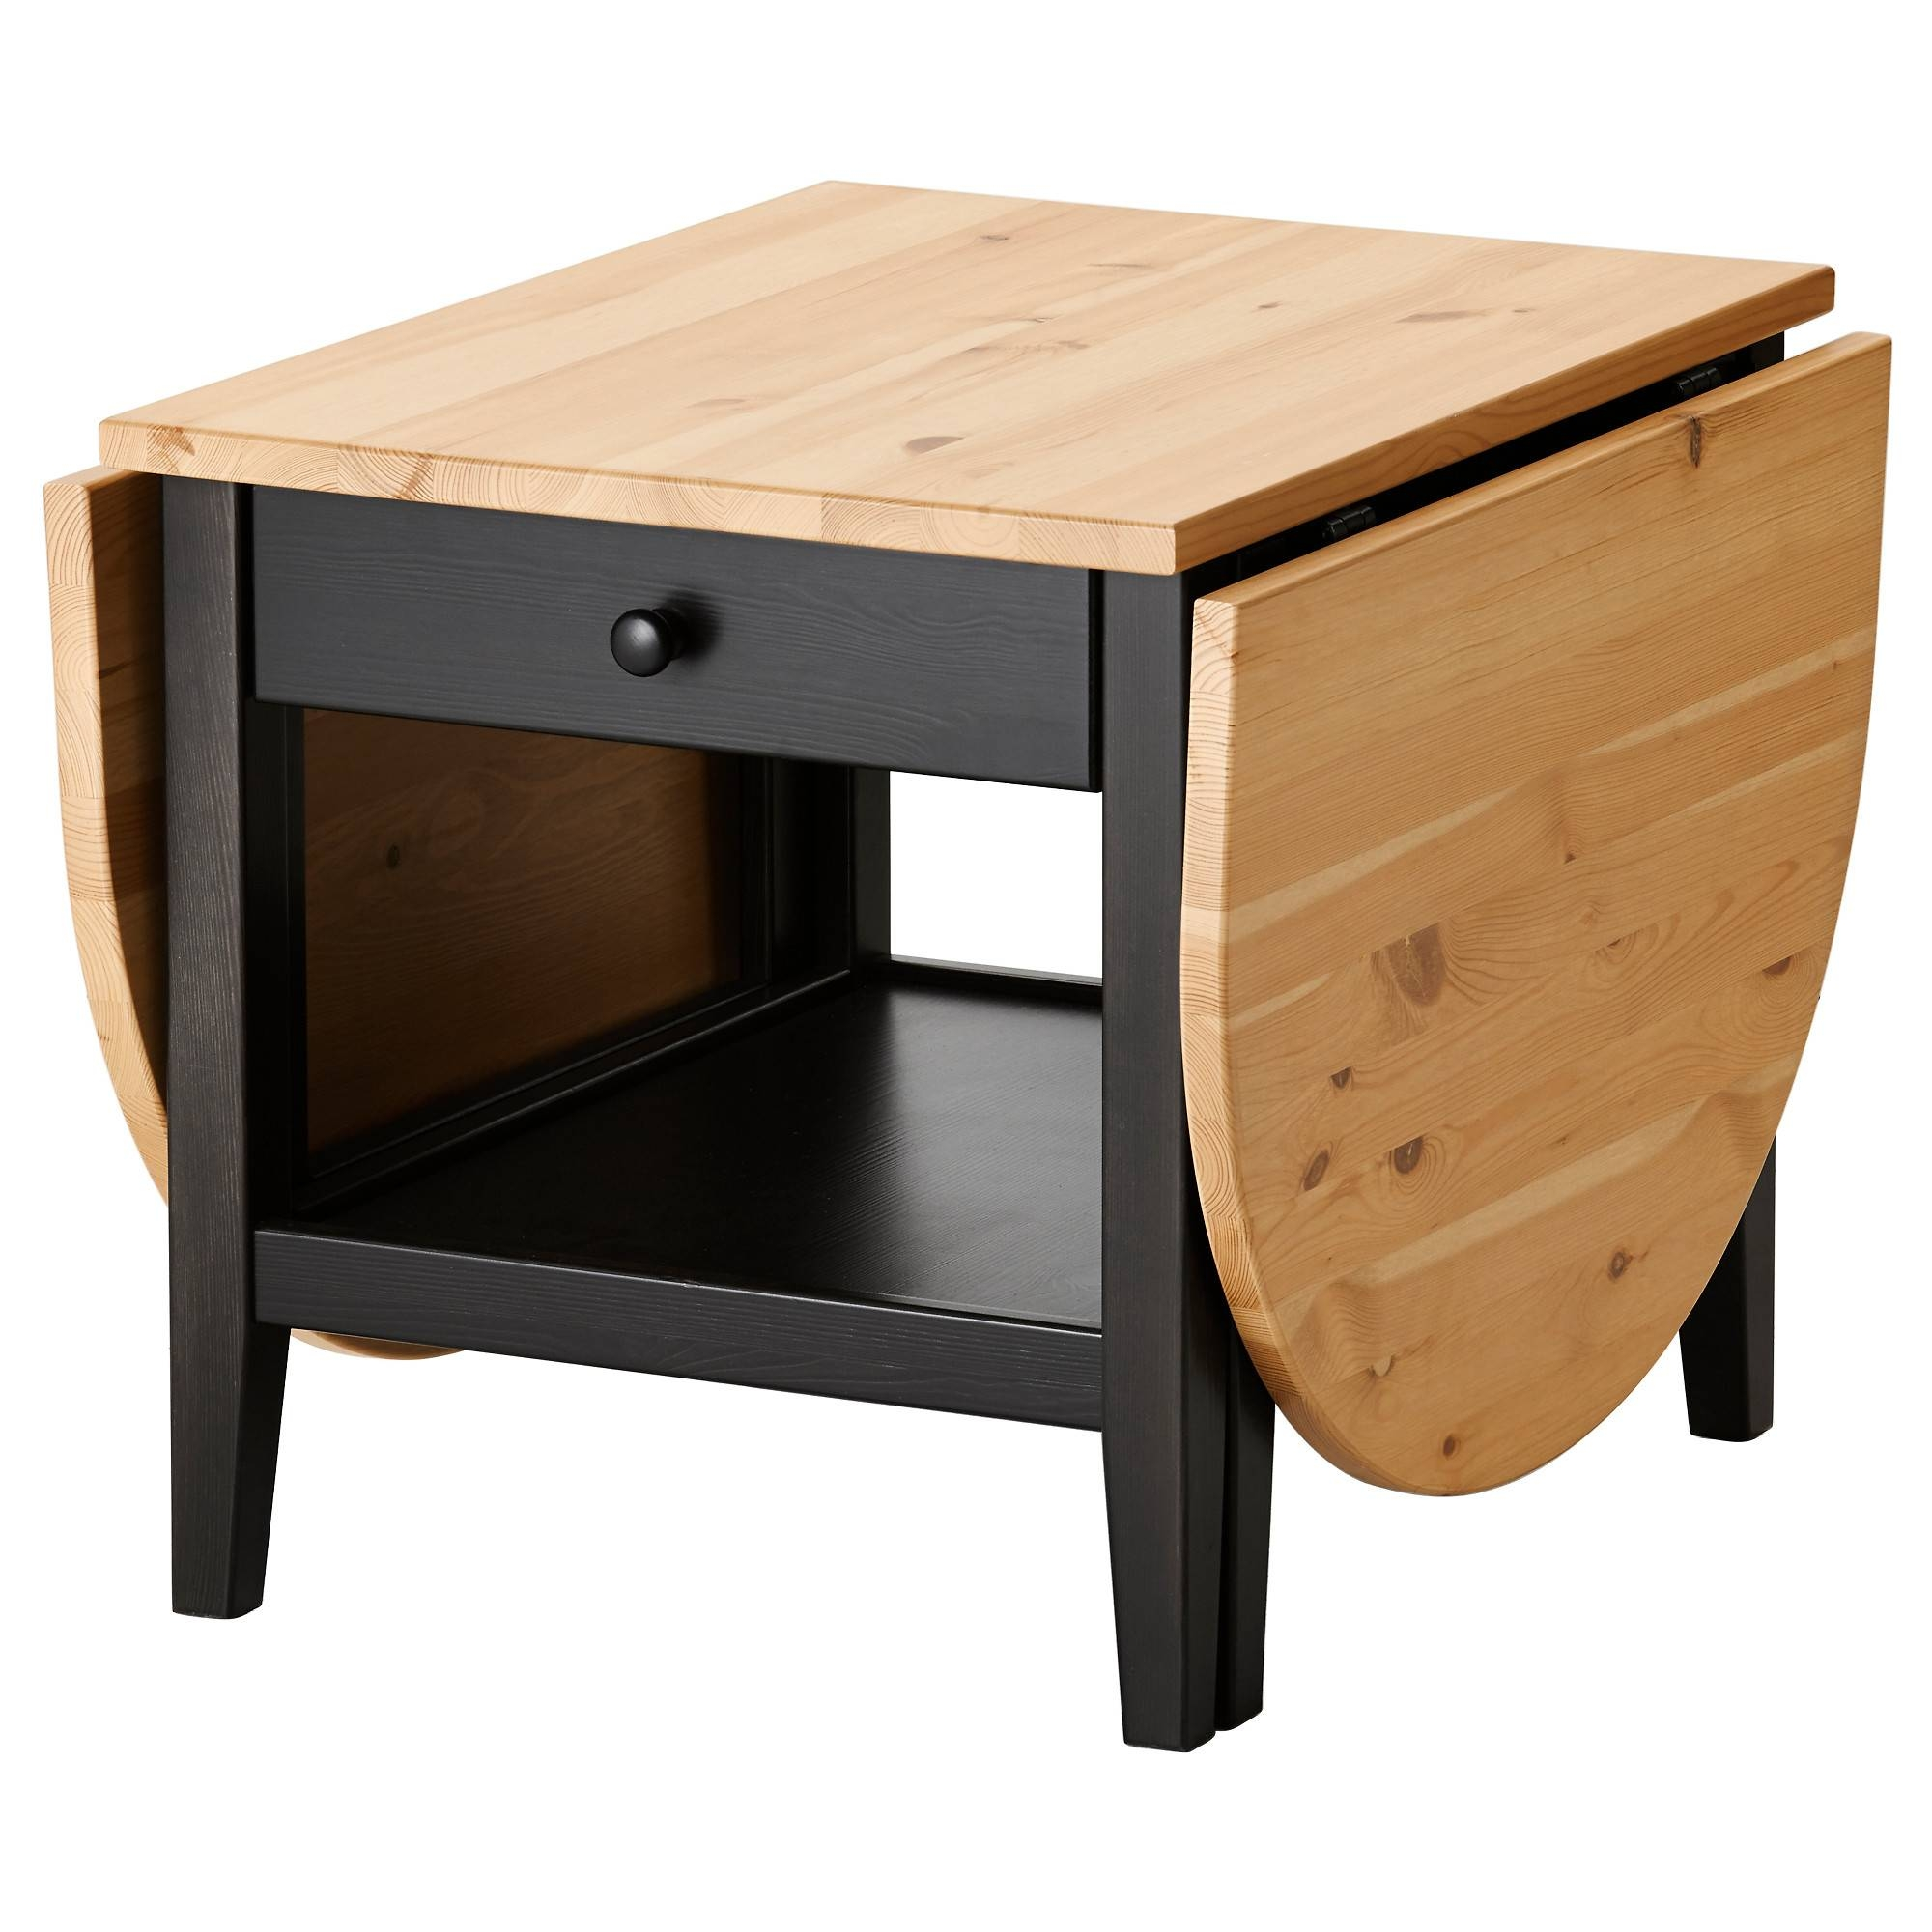 Arkelstorp Coffee Table - Ikea for Desk Coffee Tables (Image 1 of 30)